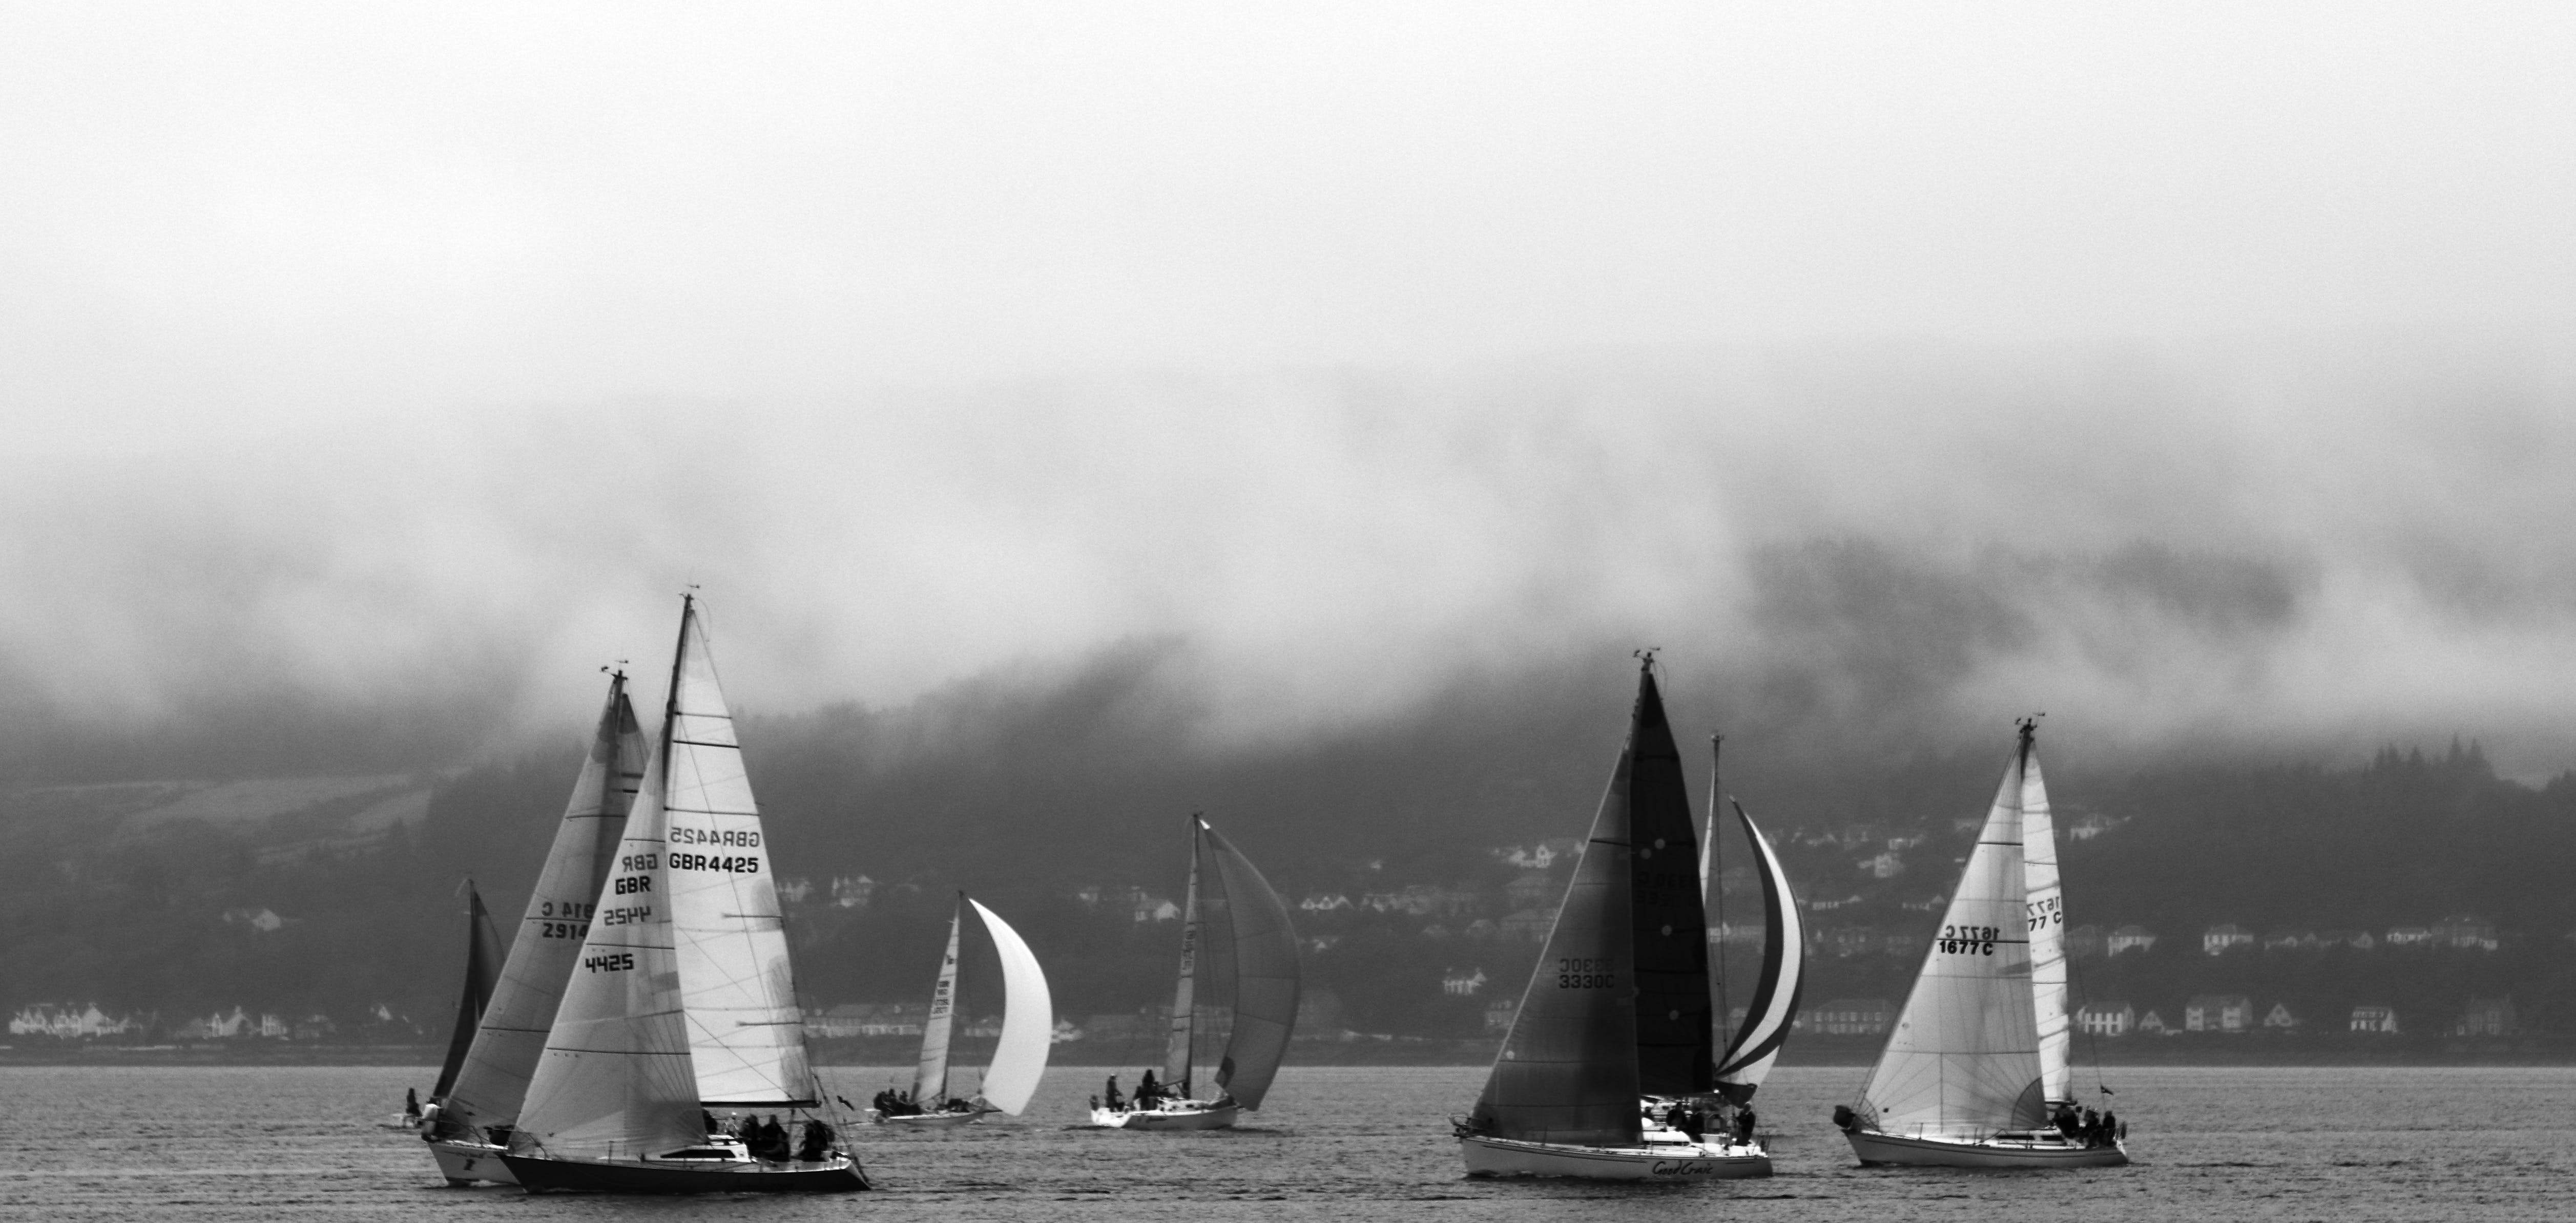 Grayscale Photo of Sailboats